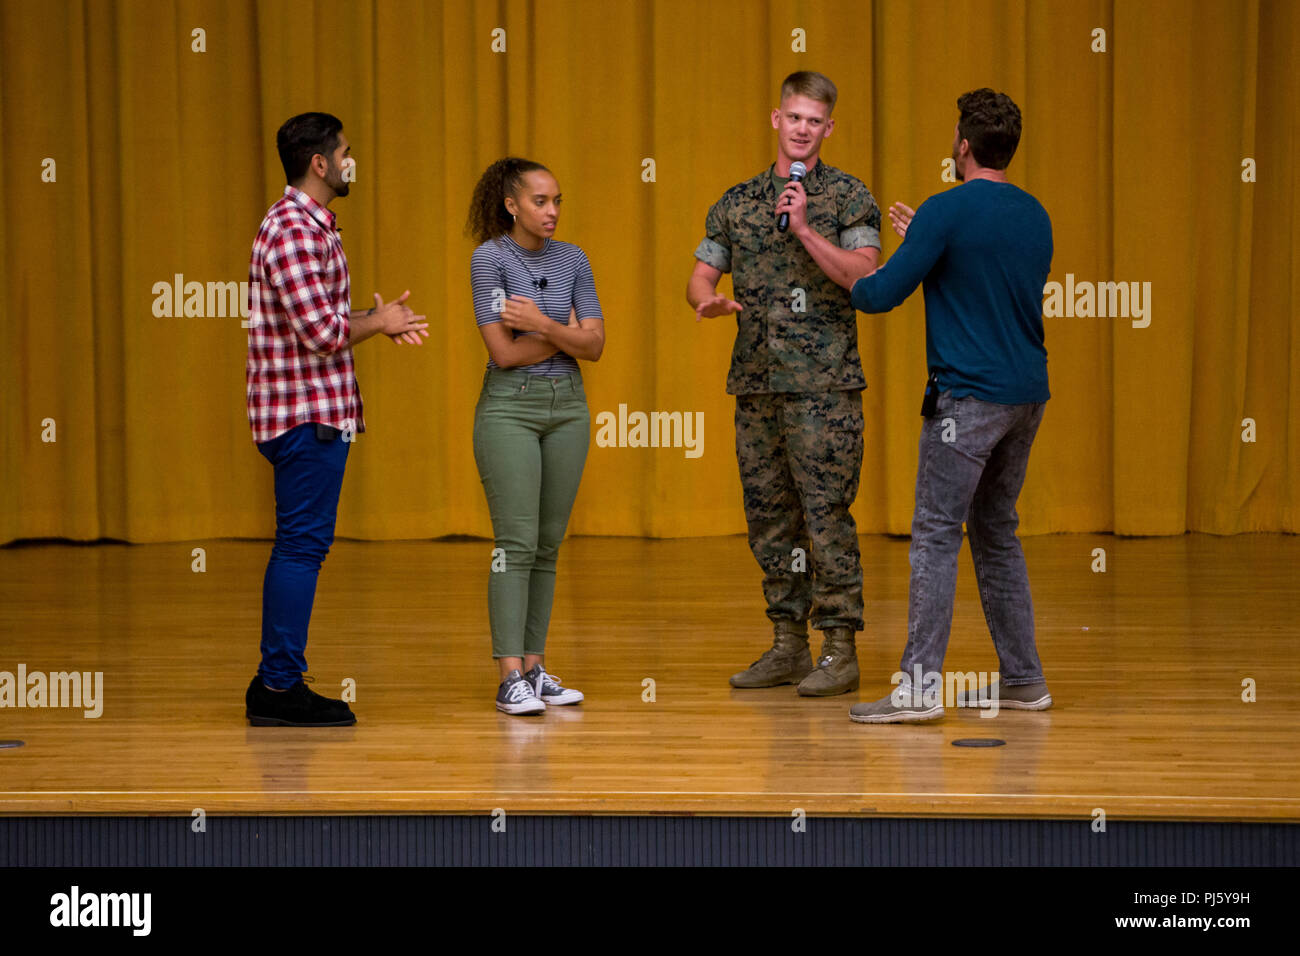 CAMP FOSTER, OKINAWA, Japan— Lance Cpl. Jonah Edwards (center right) participates in an improvised acting exercise during the Pure Praxis Sexual Assault Prevention and Response Performance Education Workshop Aug. 28 at the theater on Camp Foster, Okinawa, Japan. Marines and sailors from the audience acted out scenarios with the Pure Praxis actors on the stage. Edwards is a personnel clerk with Headquarters and Support Battalion, Marine Corps Installations Pacific. (U.S. Marine Corps photo by Lance Cpl. Brennan Priest) Stock Photo